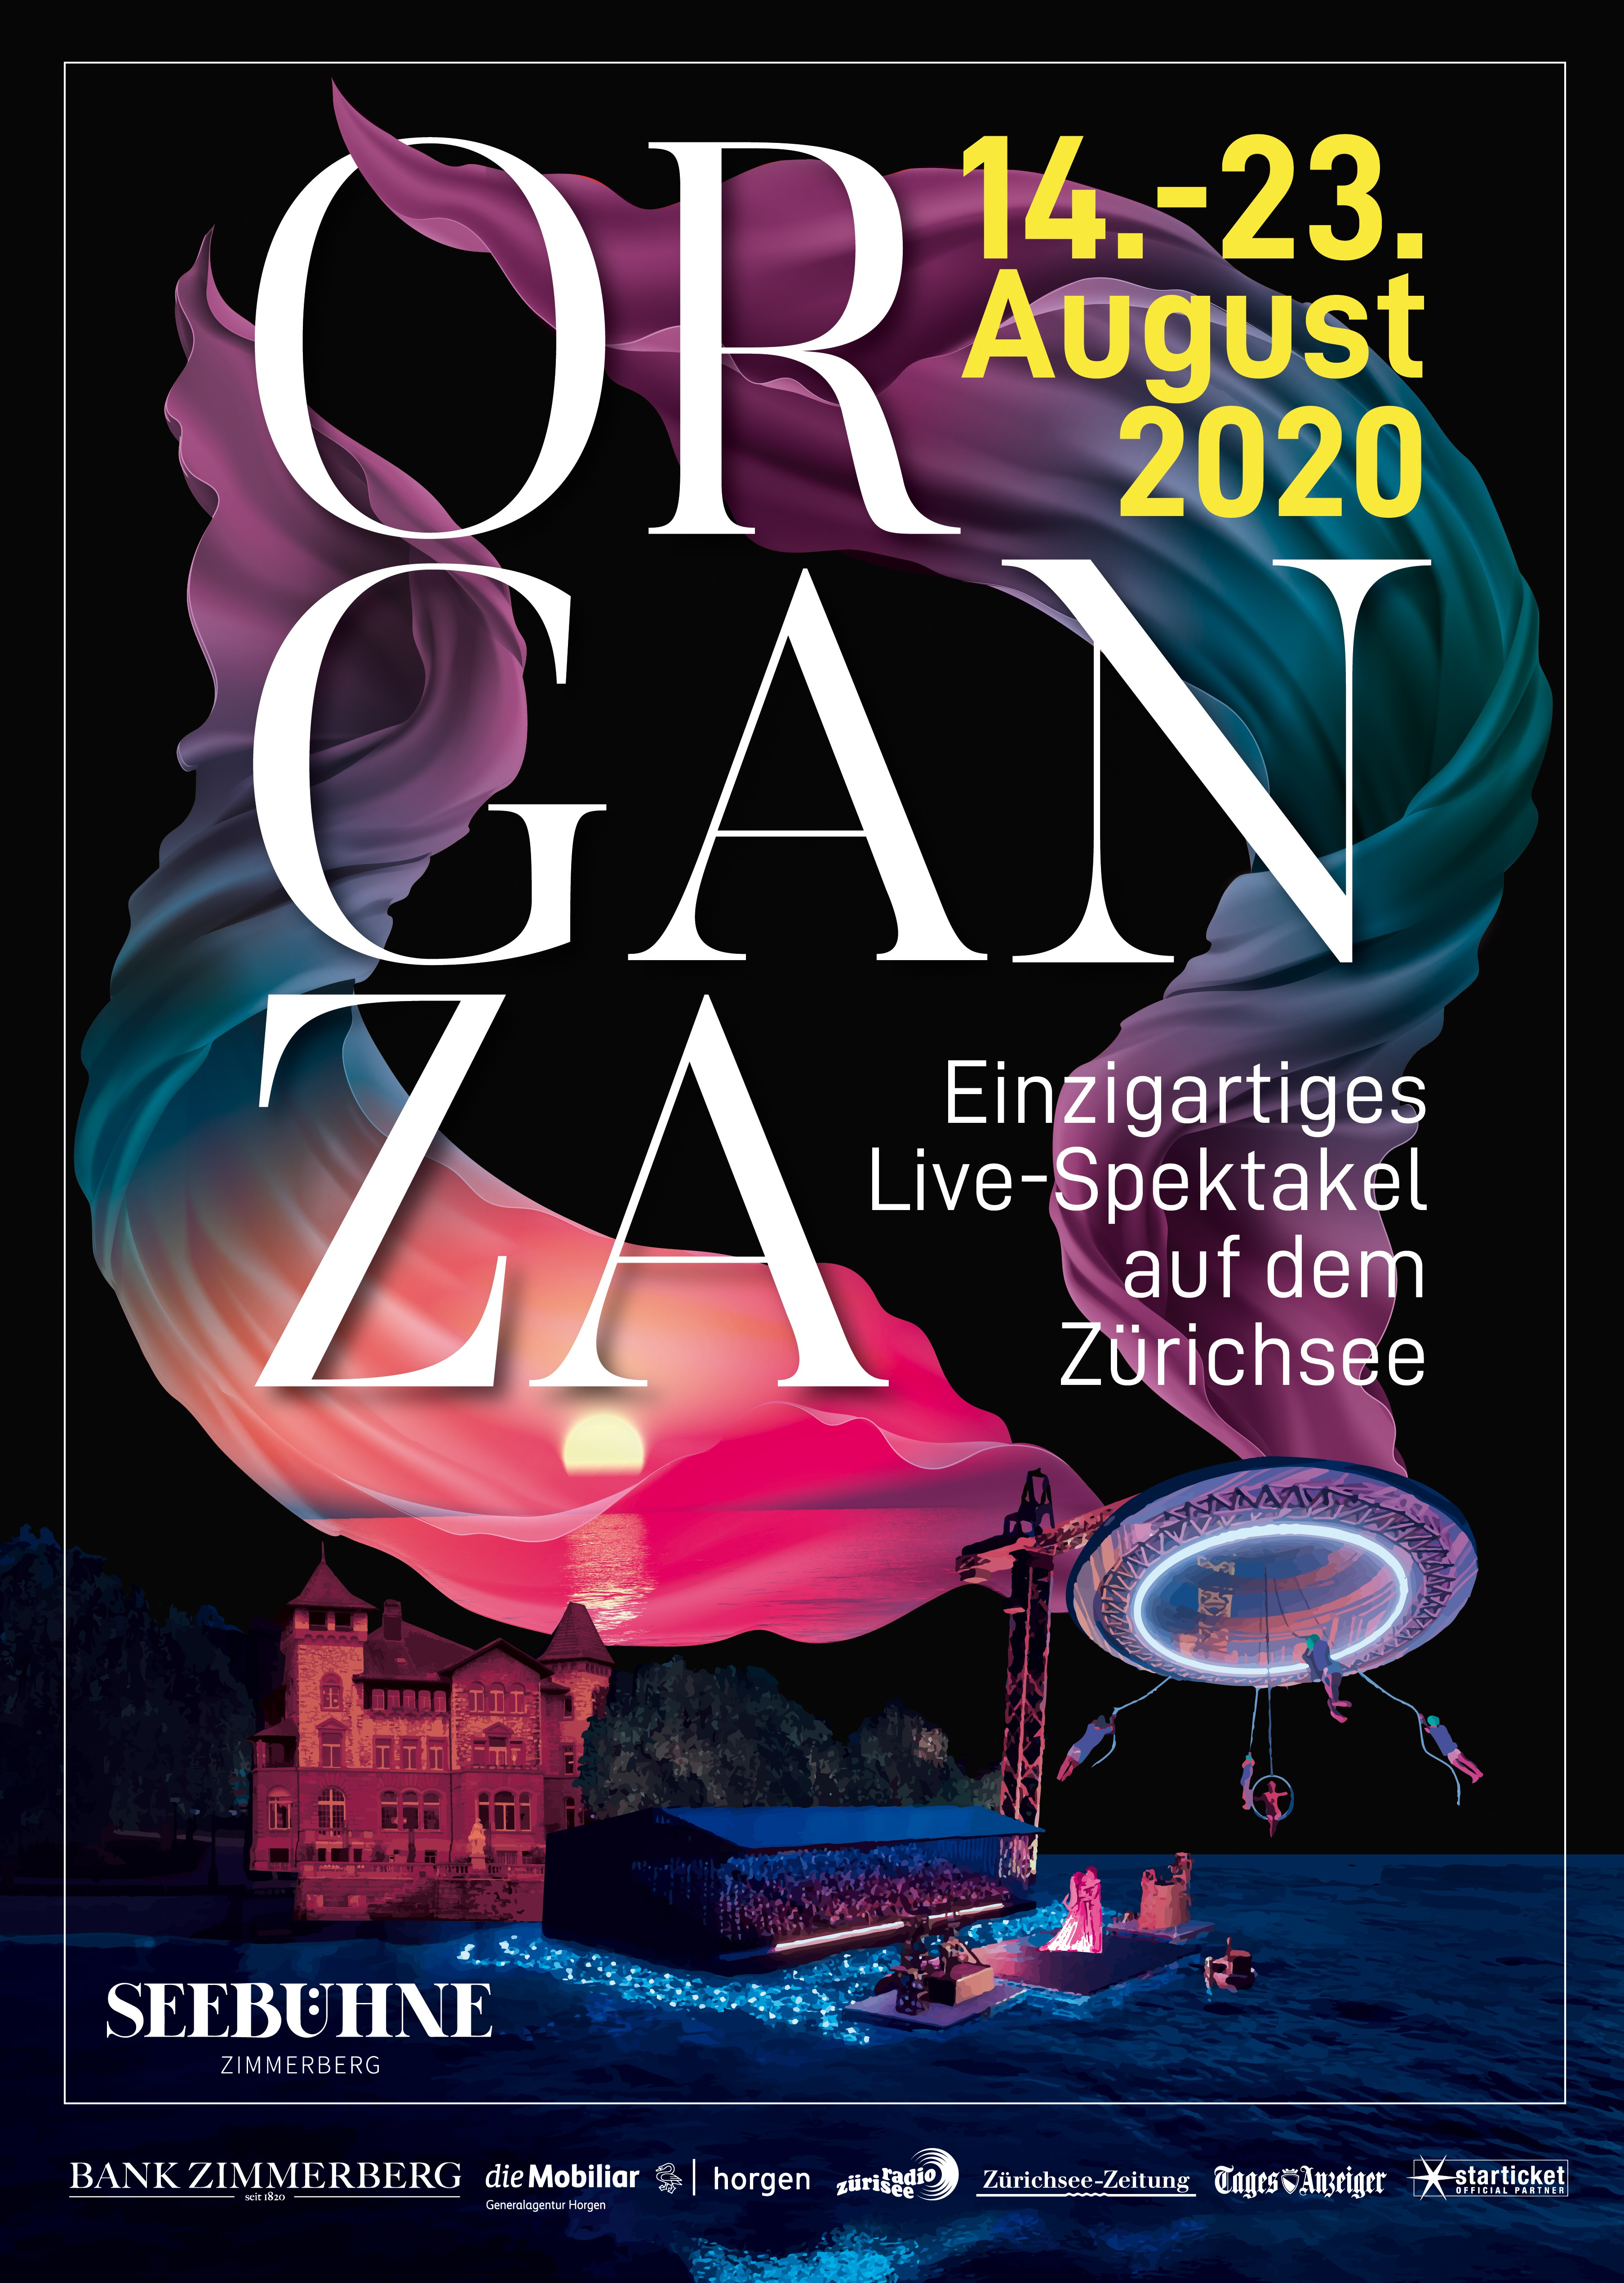 Create an attracting poster for Organza - the new spectacular show